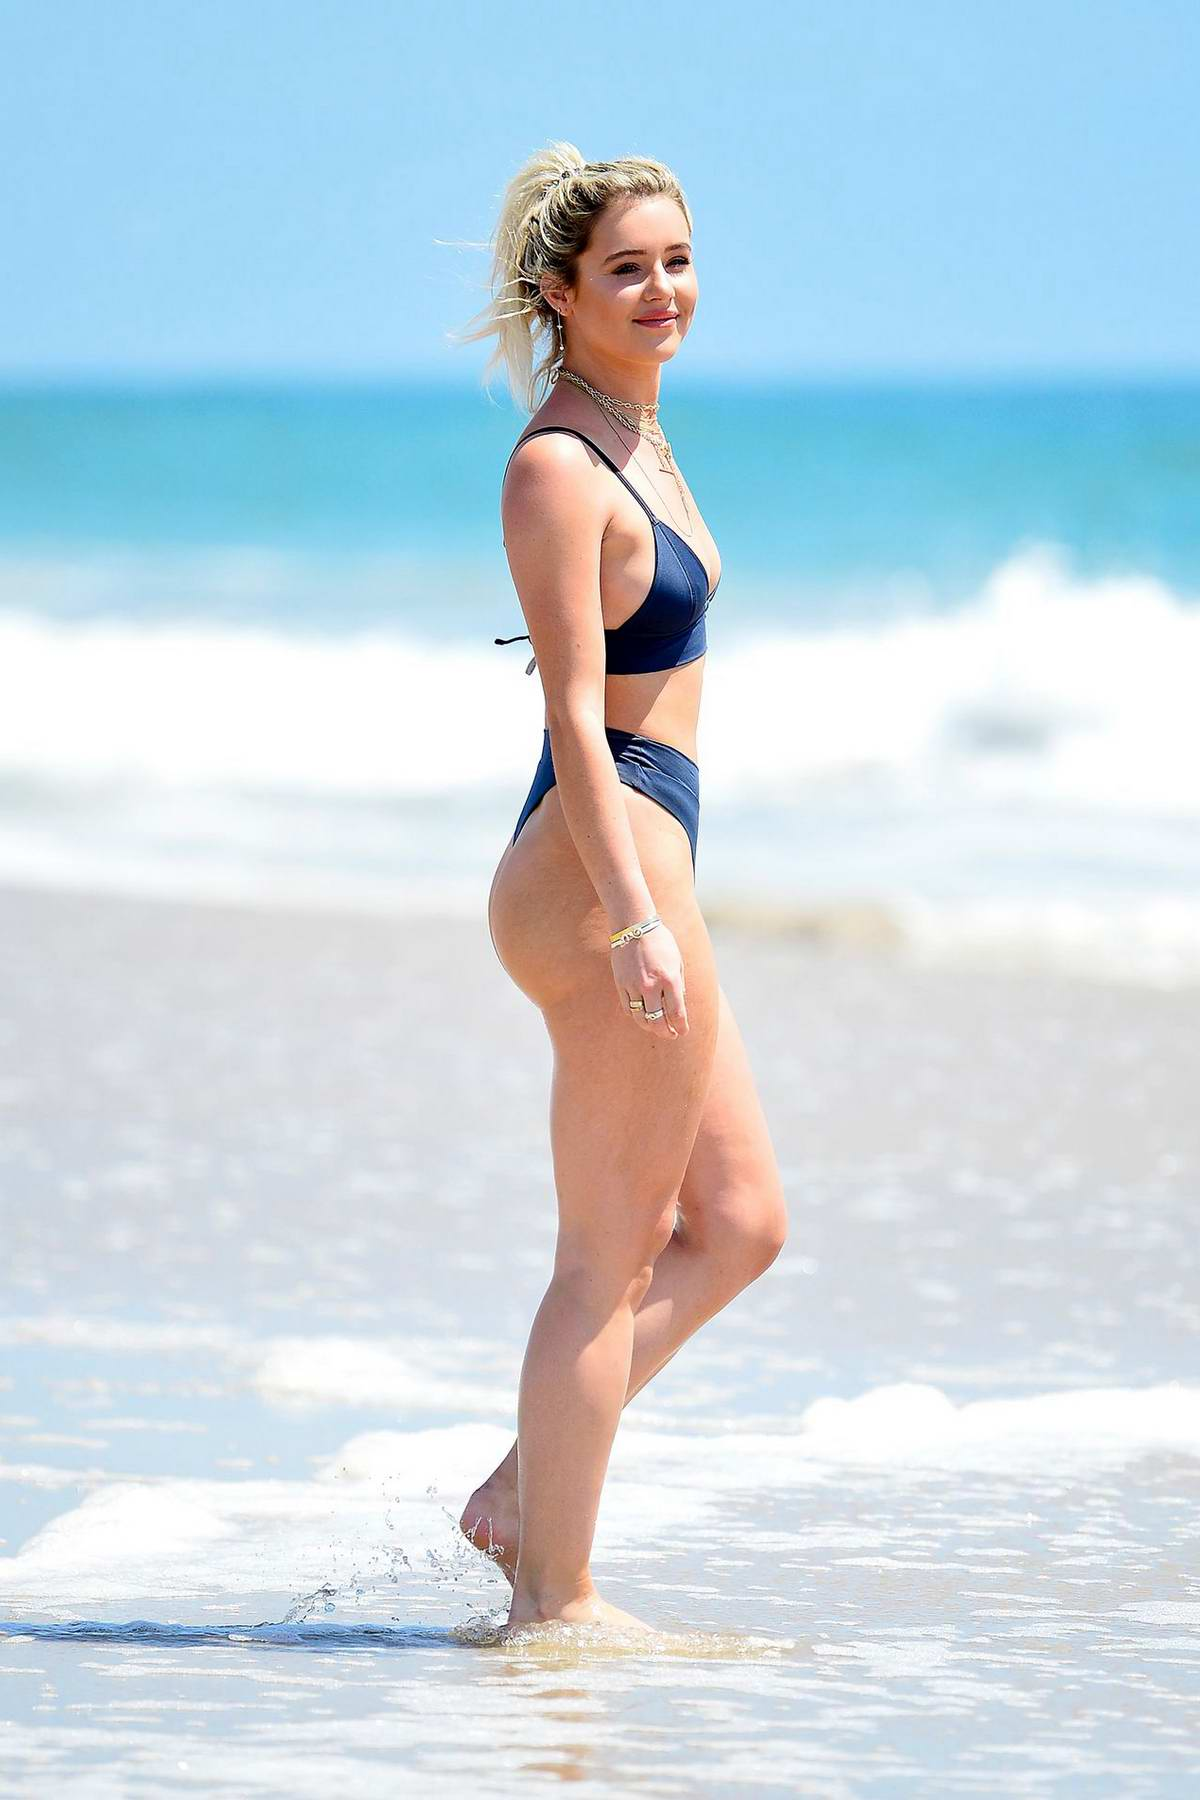 Tina Stinnes wears a blue BooHoo bikini while enjoying the beach in Miami, Florida